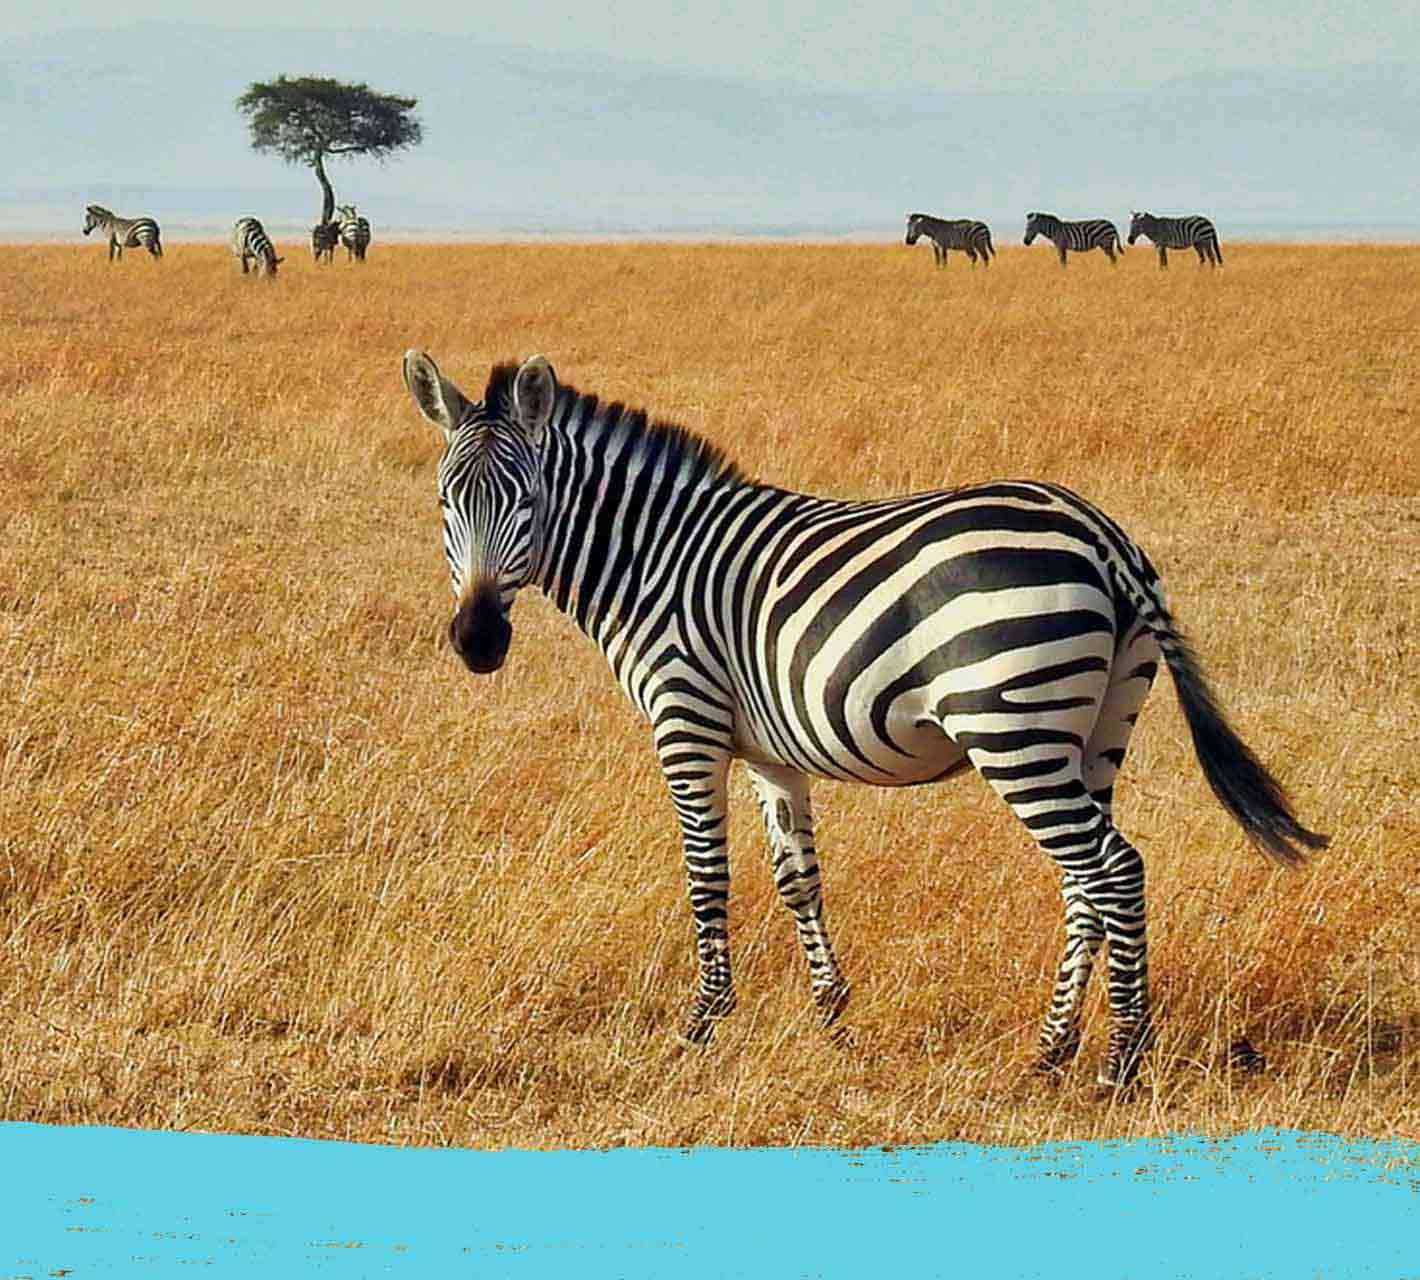 Zebra in the savanna